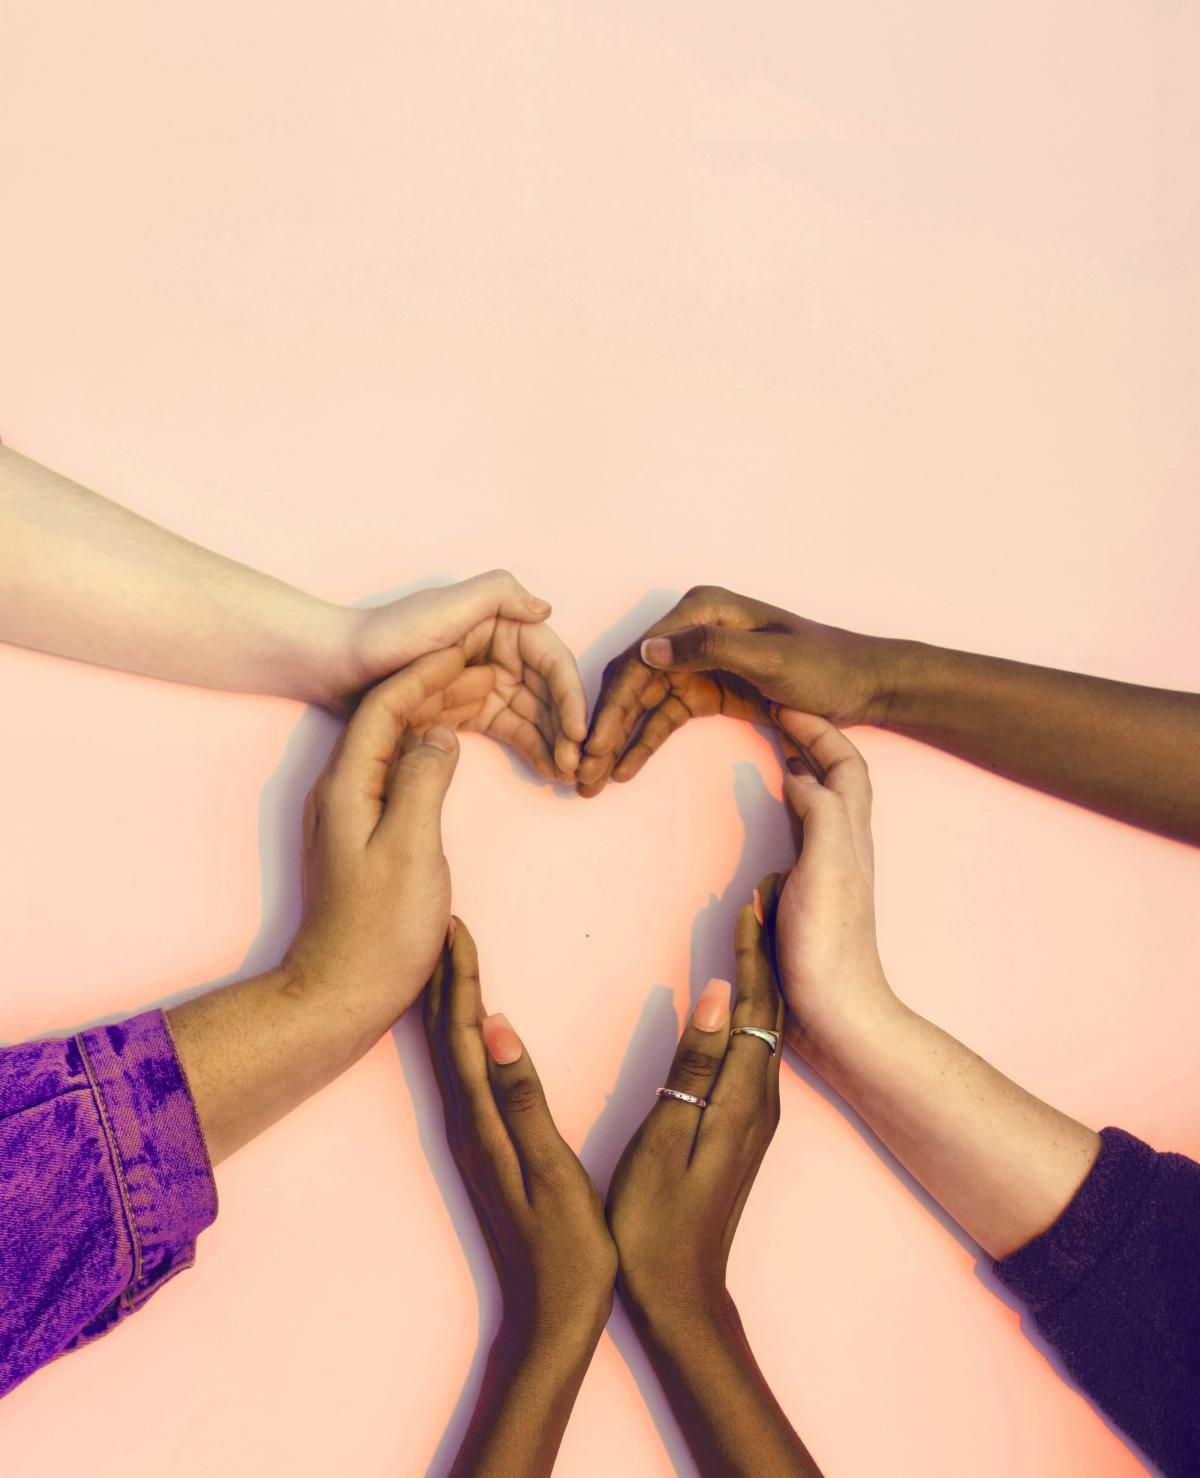 Hands with different skin color making the shape of a heart